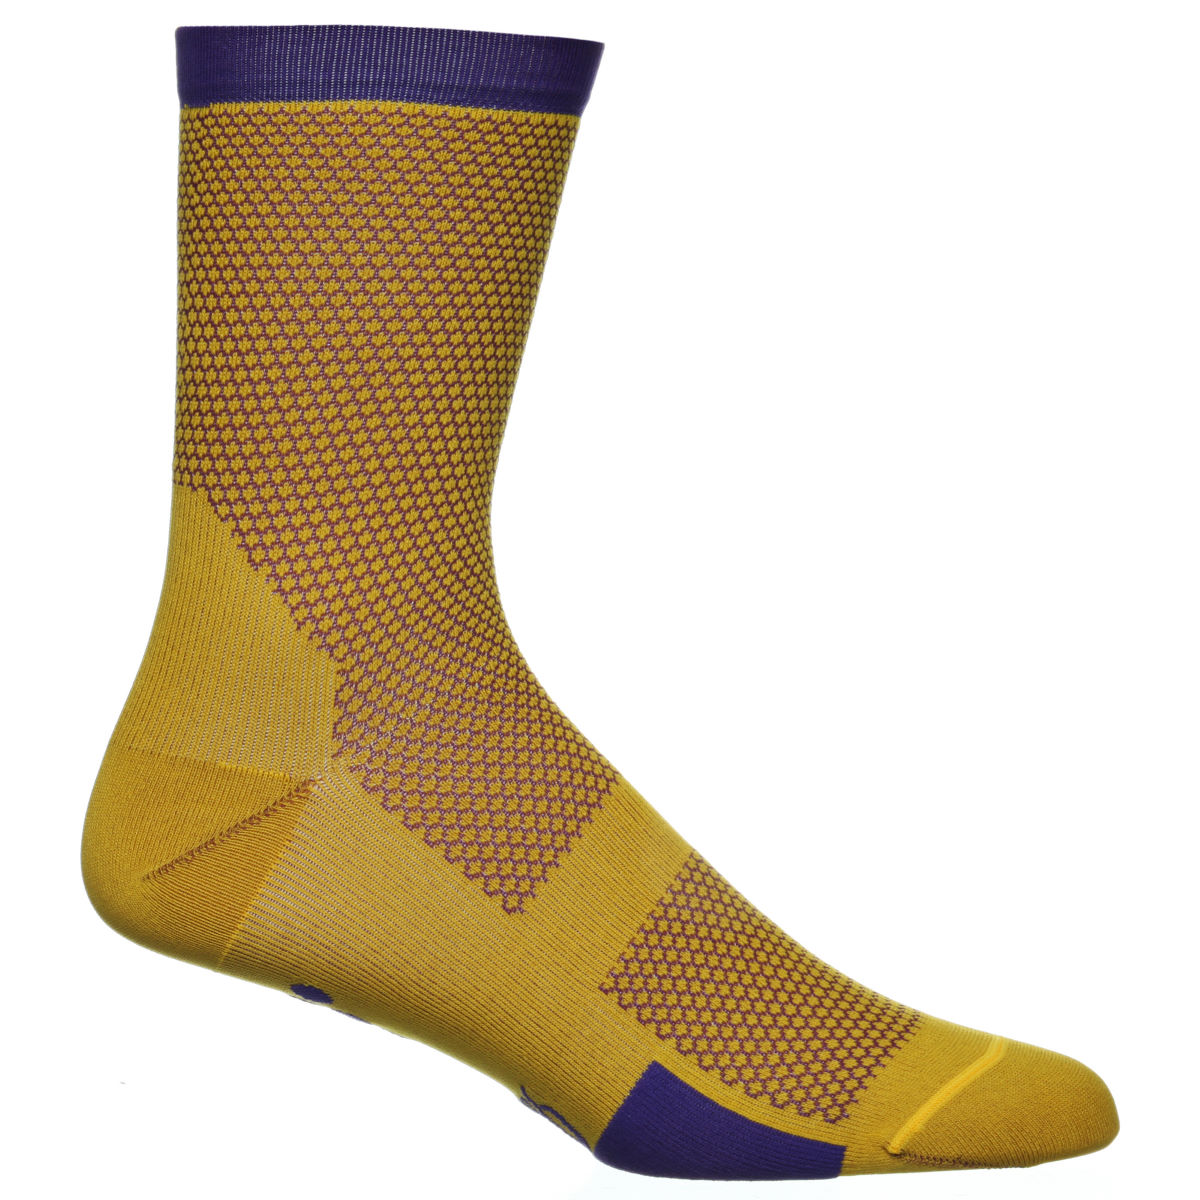 Calcetines Isadore Mullholand Climbers - Calcetines de ciclismo